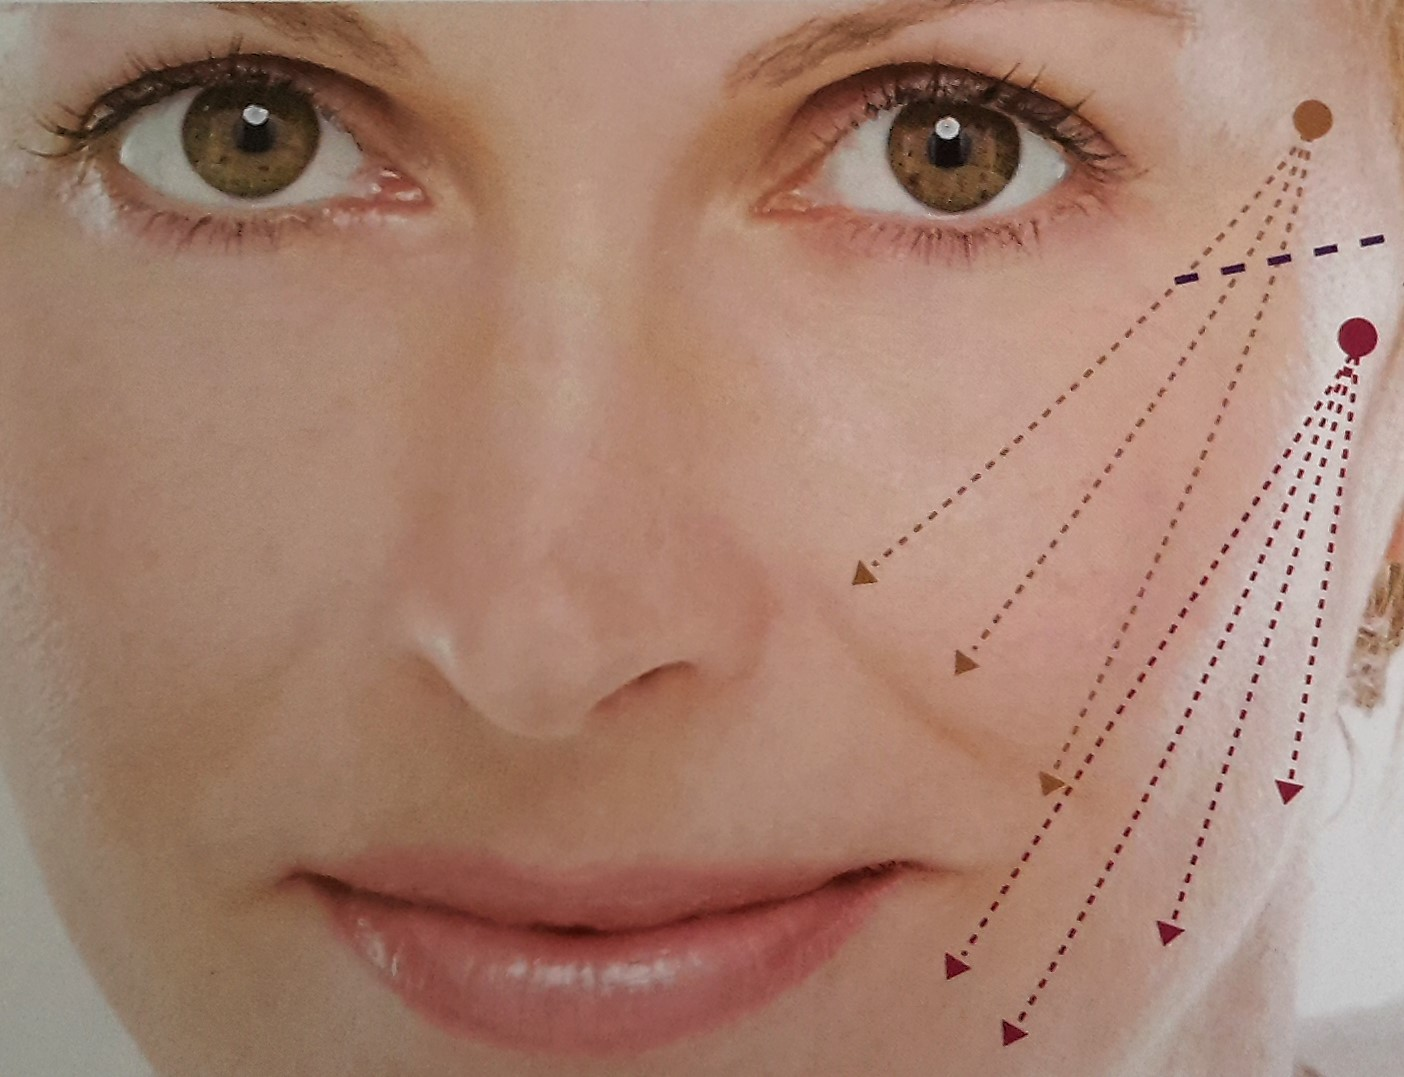 MINI NON SURGICAL FACE AND NECK LIFT WITH PDO THREADS - Vanity